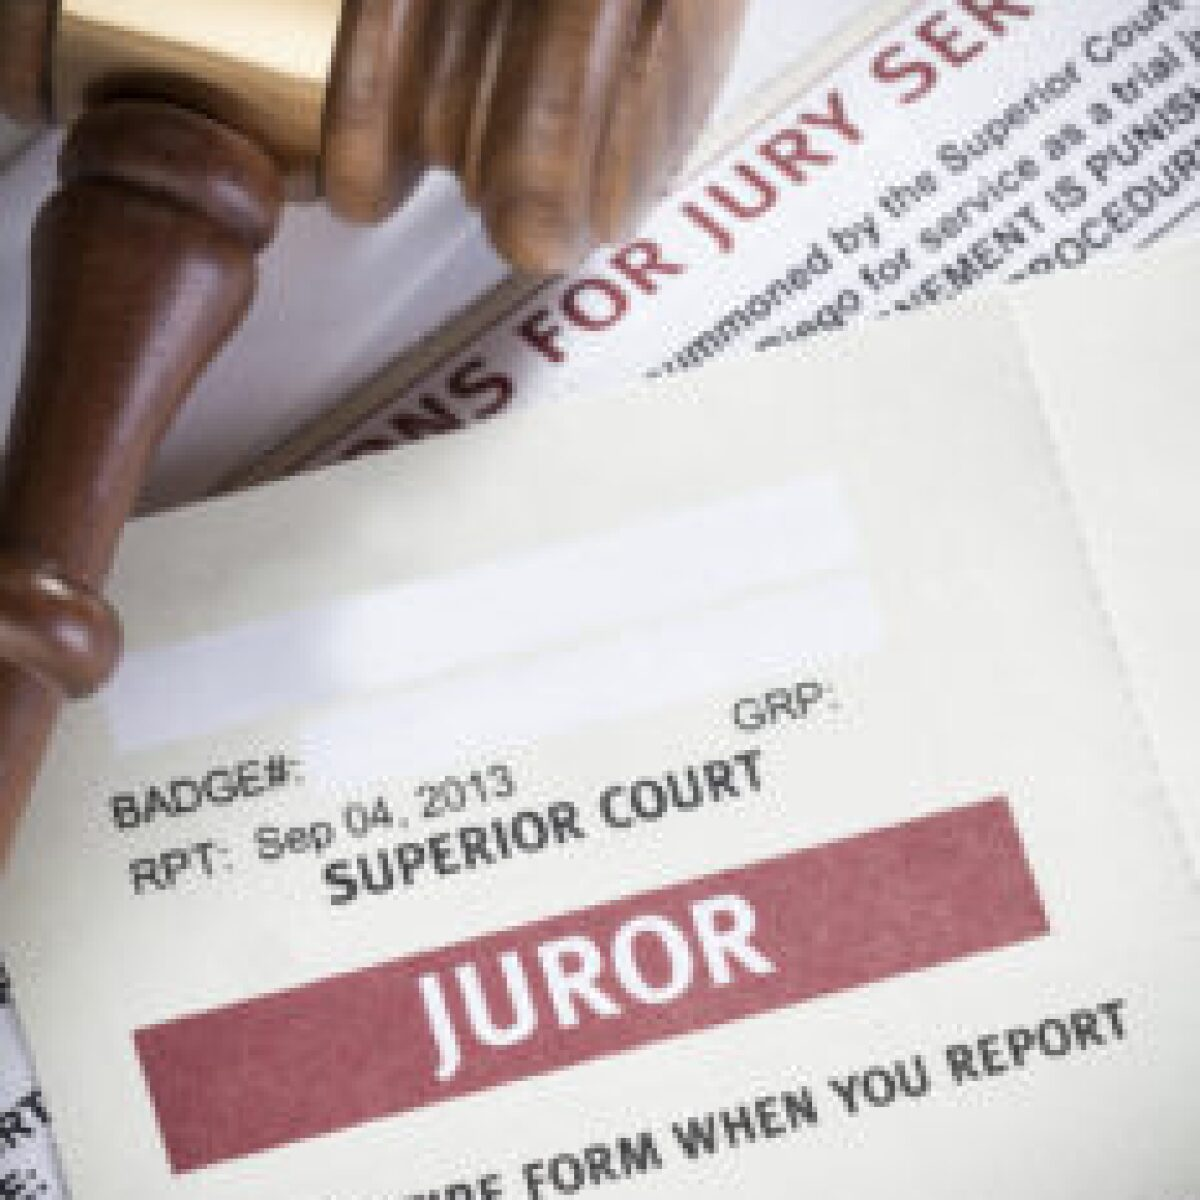 Jury Duty Scams Claim You Face Arrest From Missed Court Date